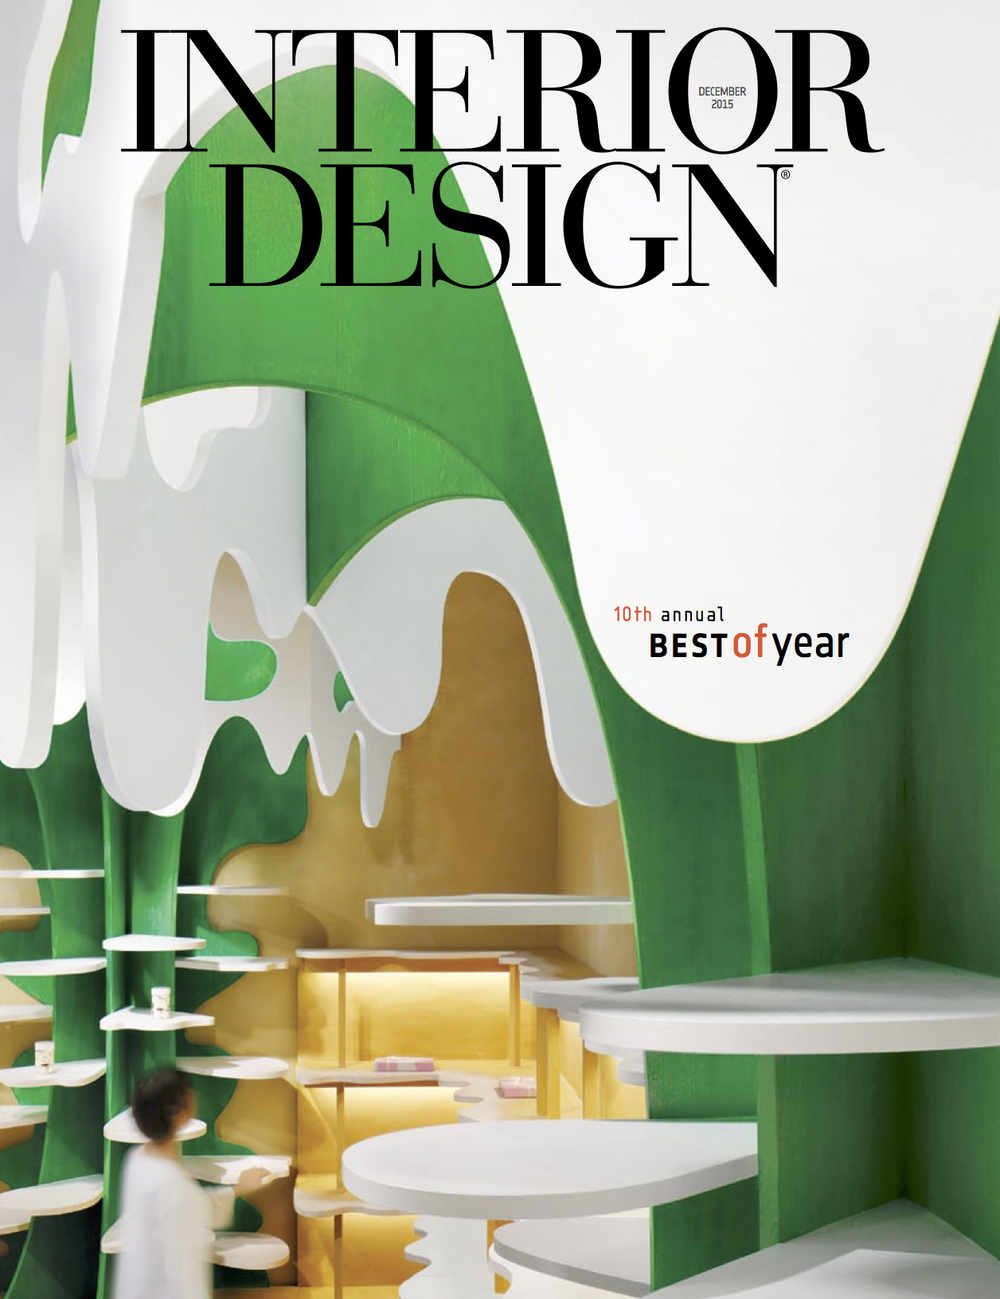 Interior Design Magazine - December 2015 - BOY - JB.jpg